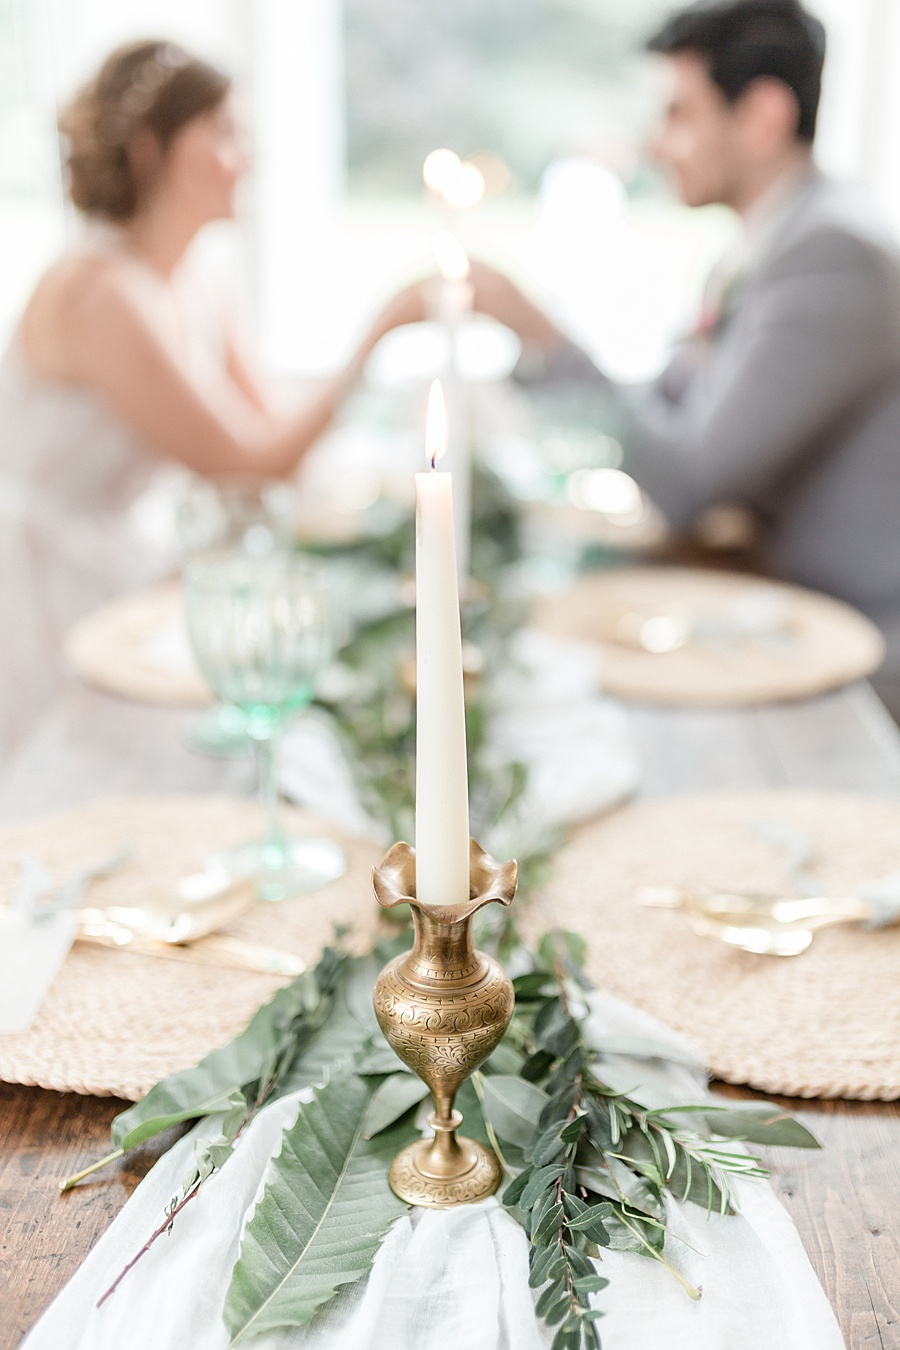 Neutral organic and minimal wedding style ideas from Kingsdown Rectory. Styling Your Wedding Your Way Images Kate Hennessey Photography (39)